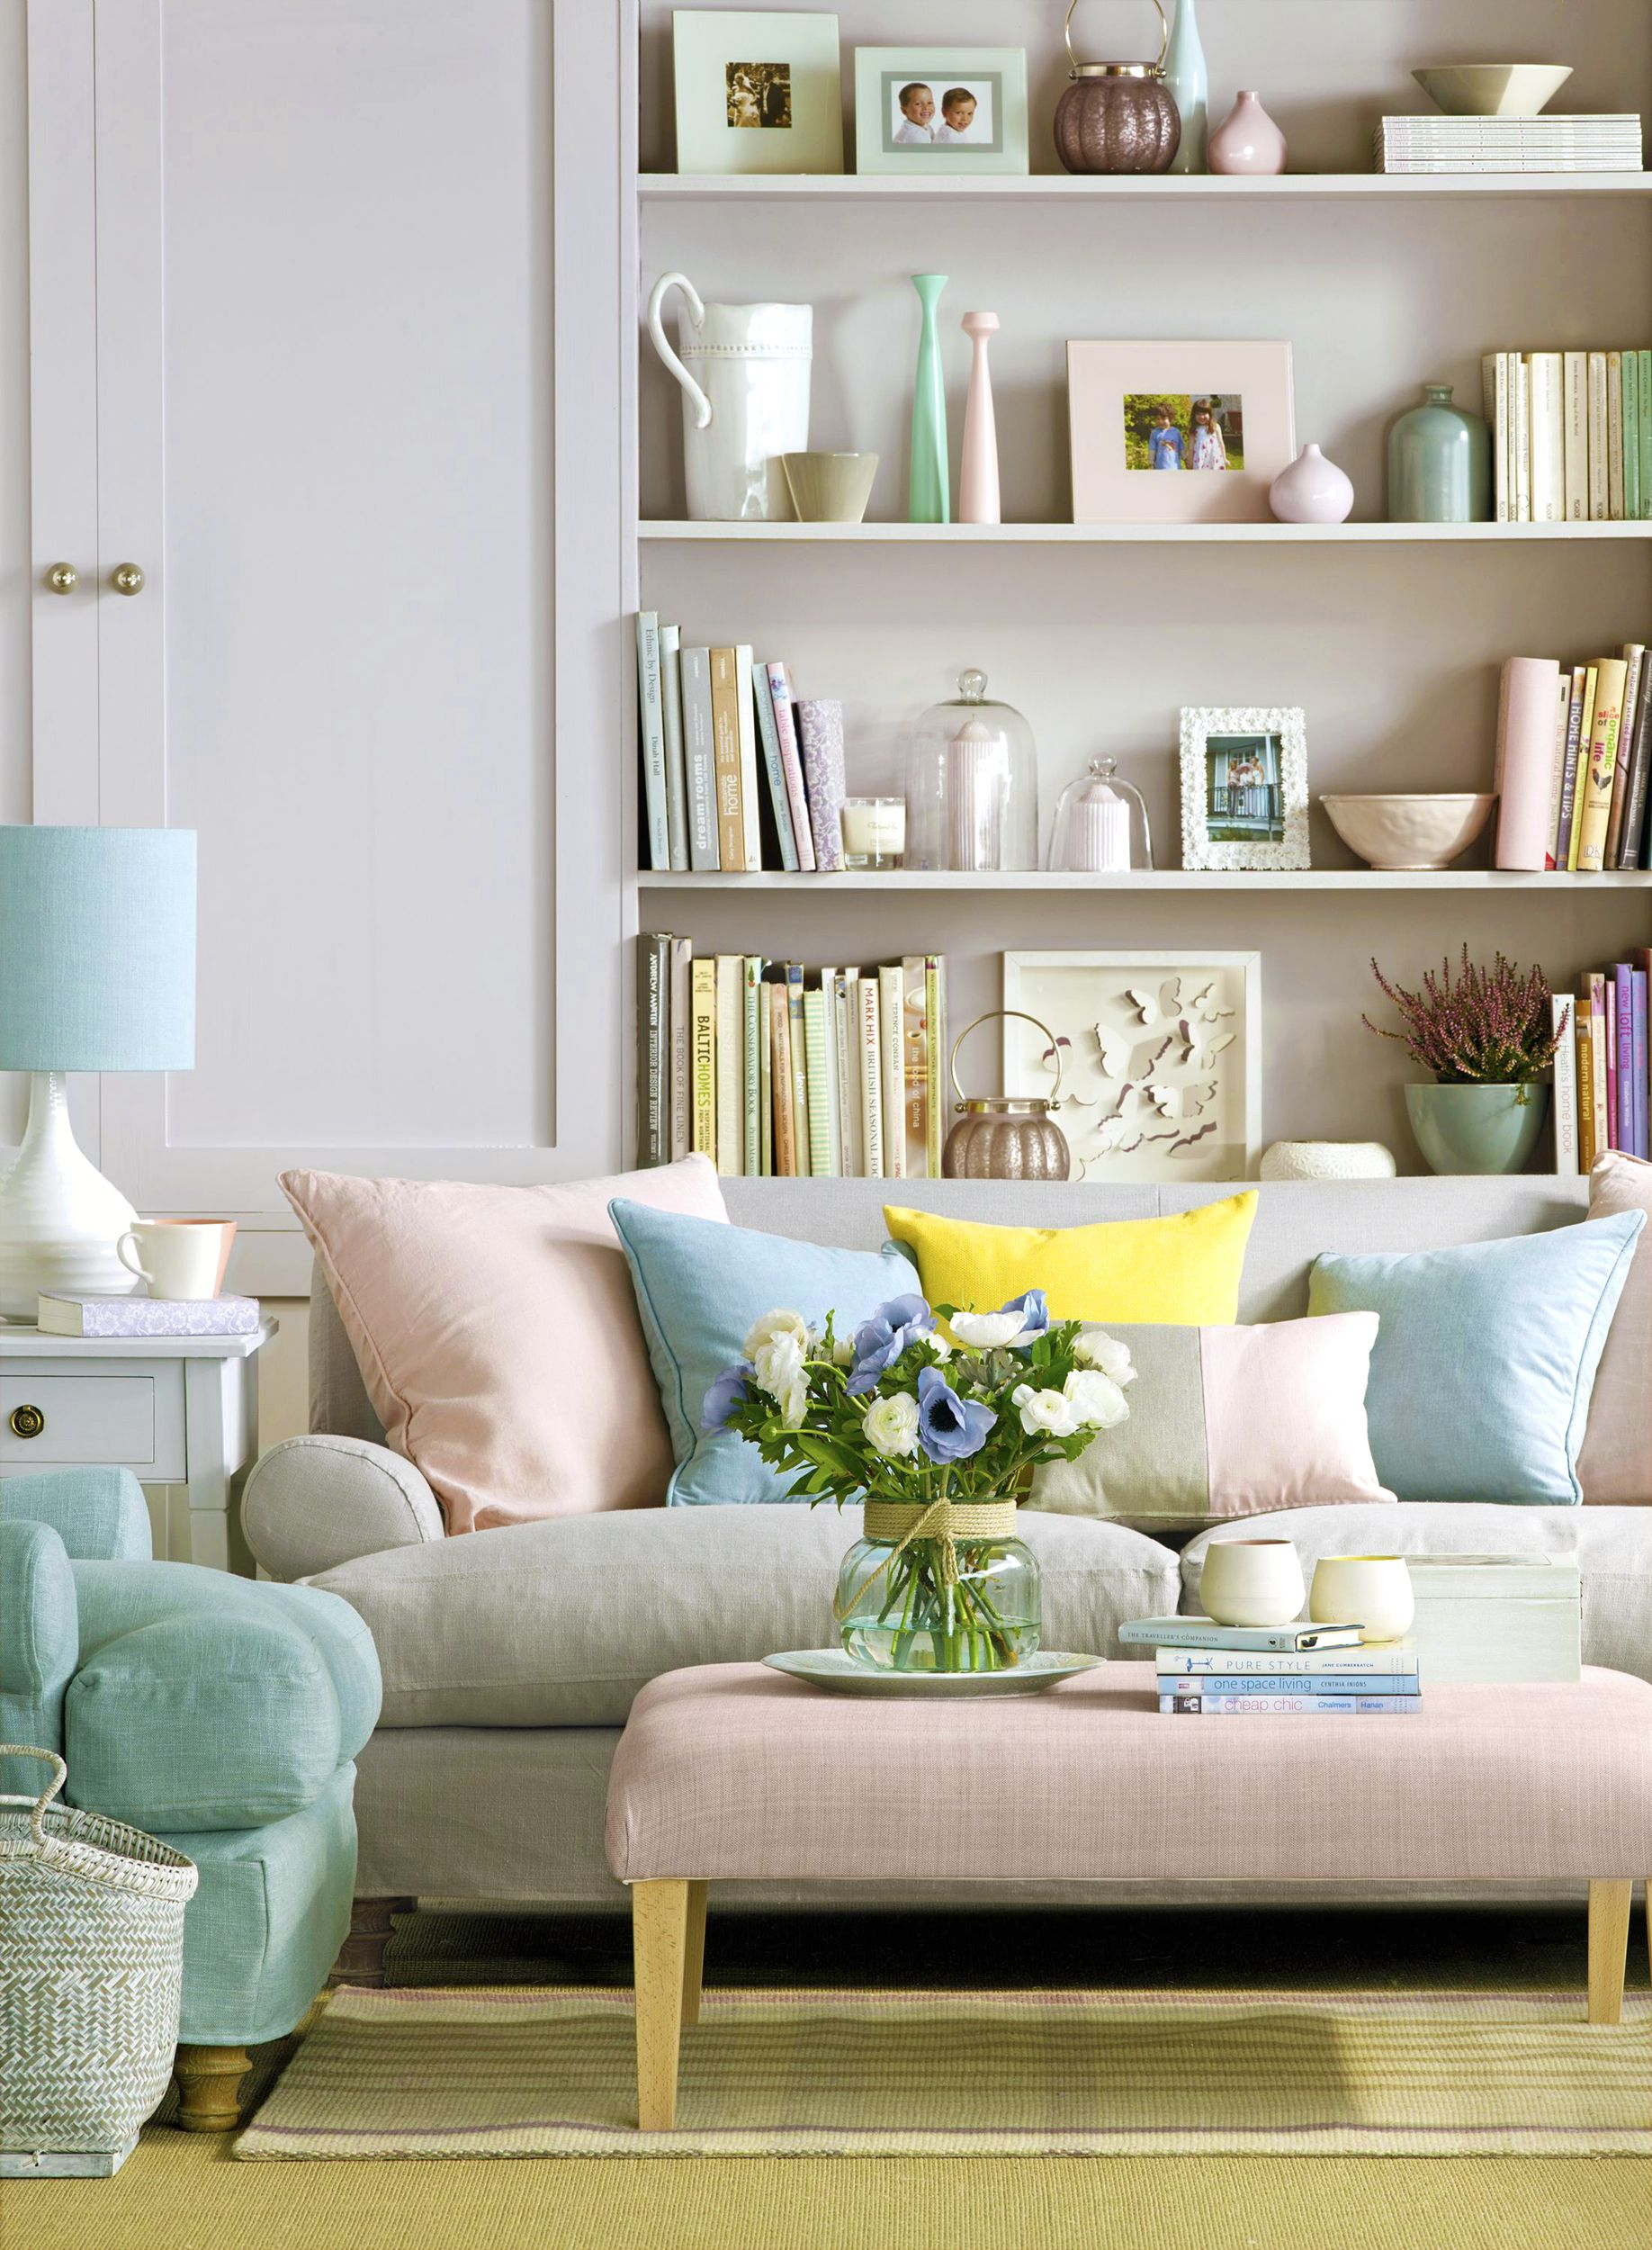 20 Spring Decor Ideas To Freshen Up